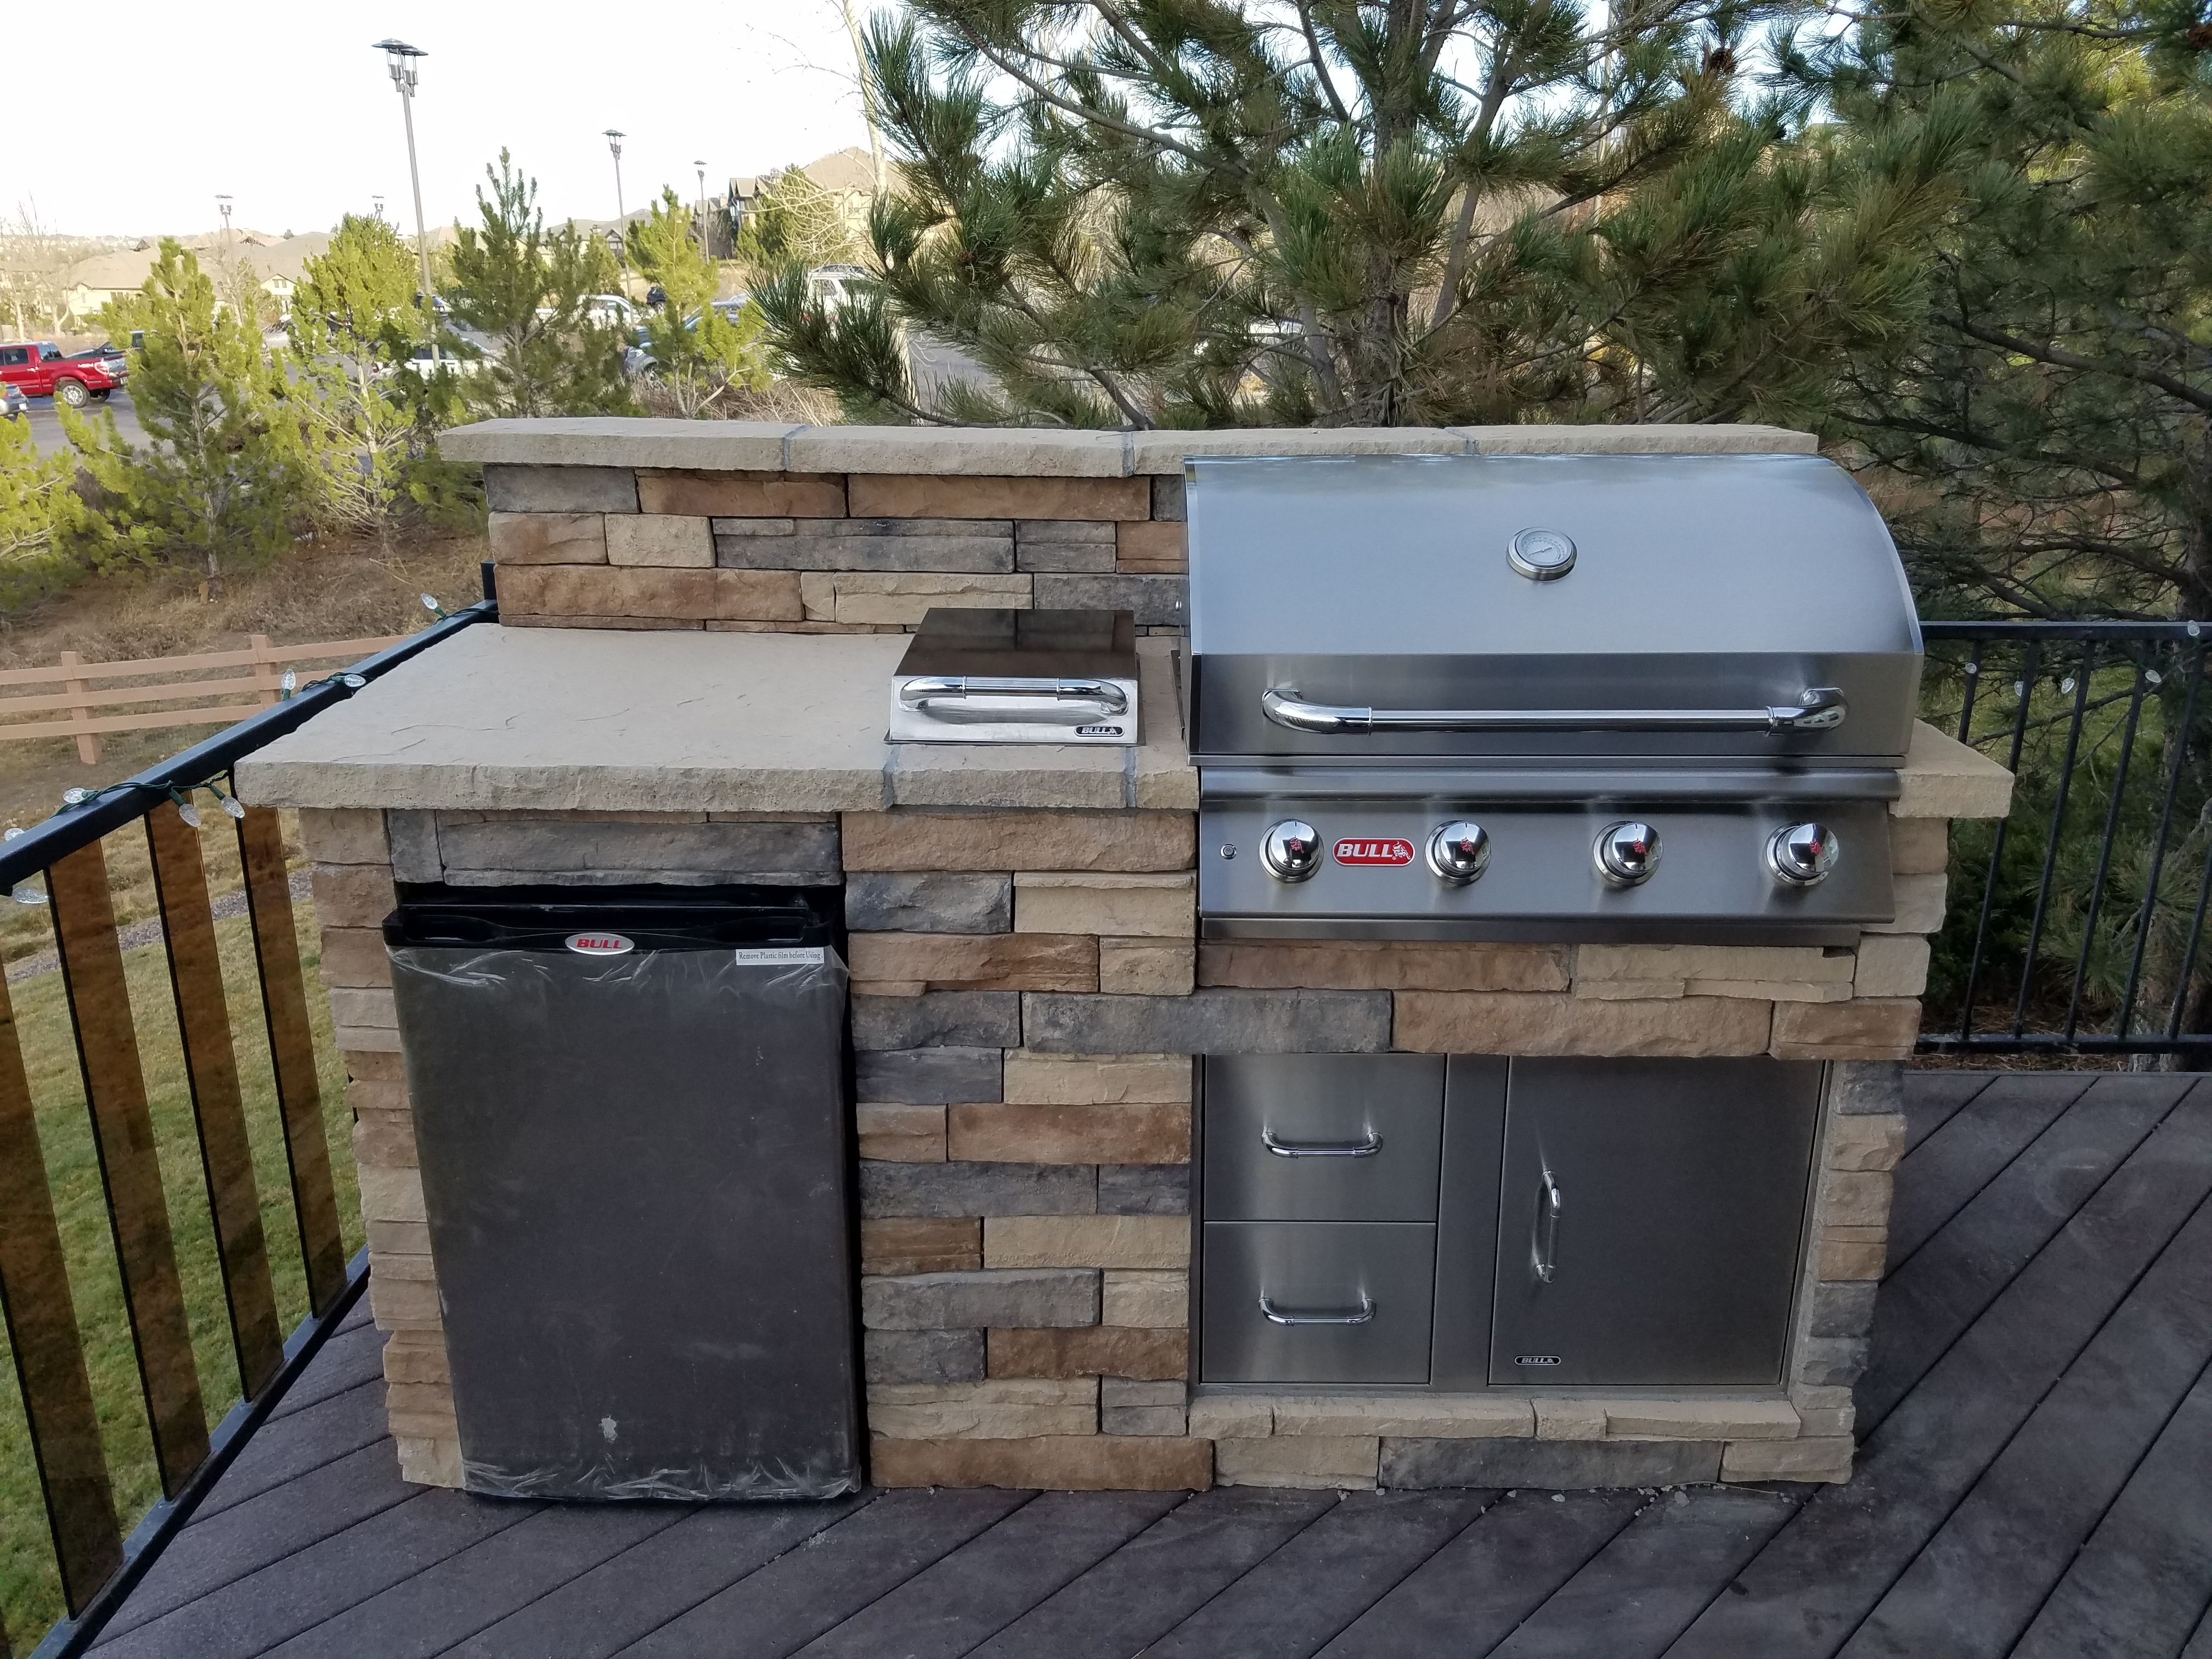 Elevated Deck 6 Grill Island With Bull Bbq Components Deck Design Outdoor Kitchen Outdoor Kitchen Design